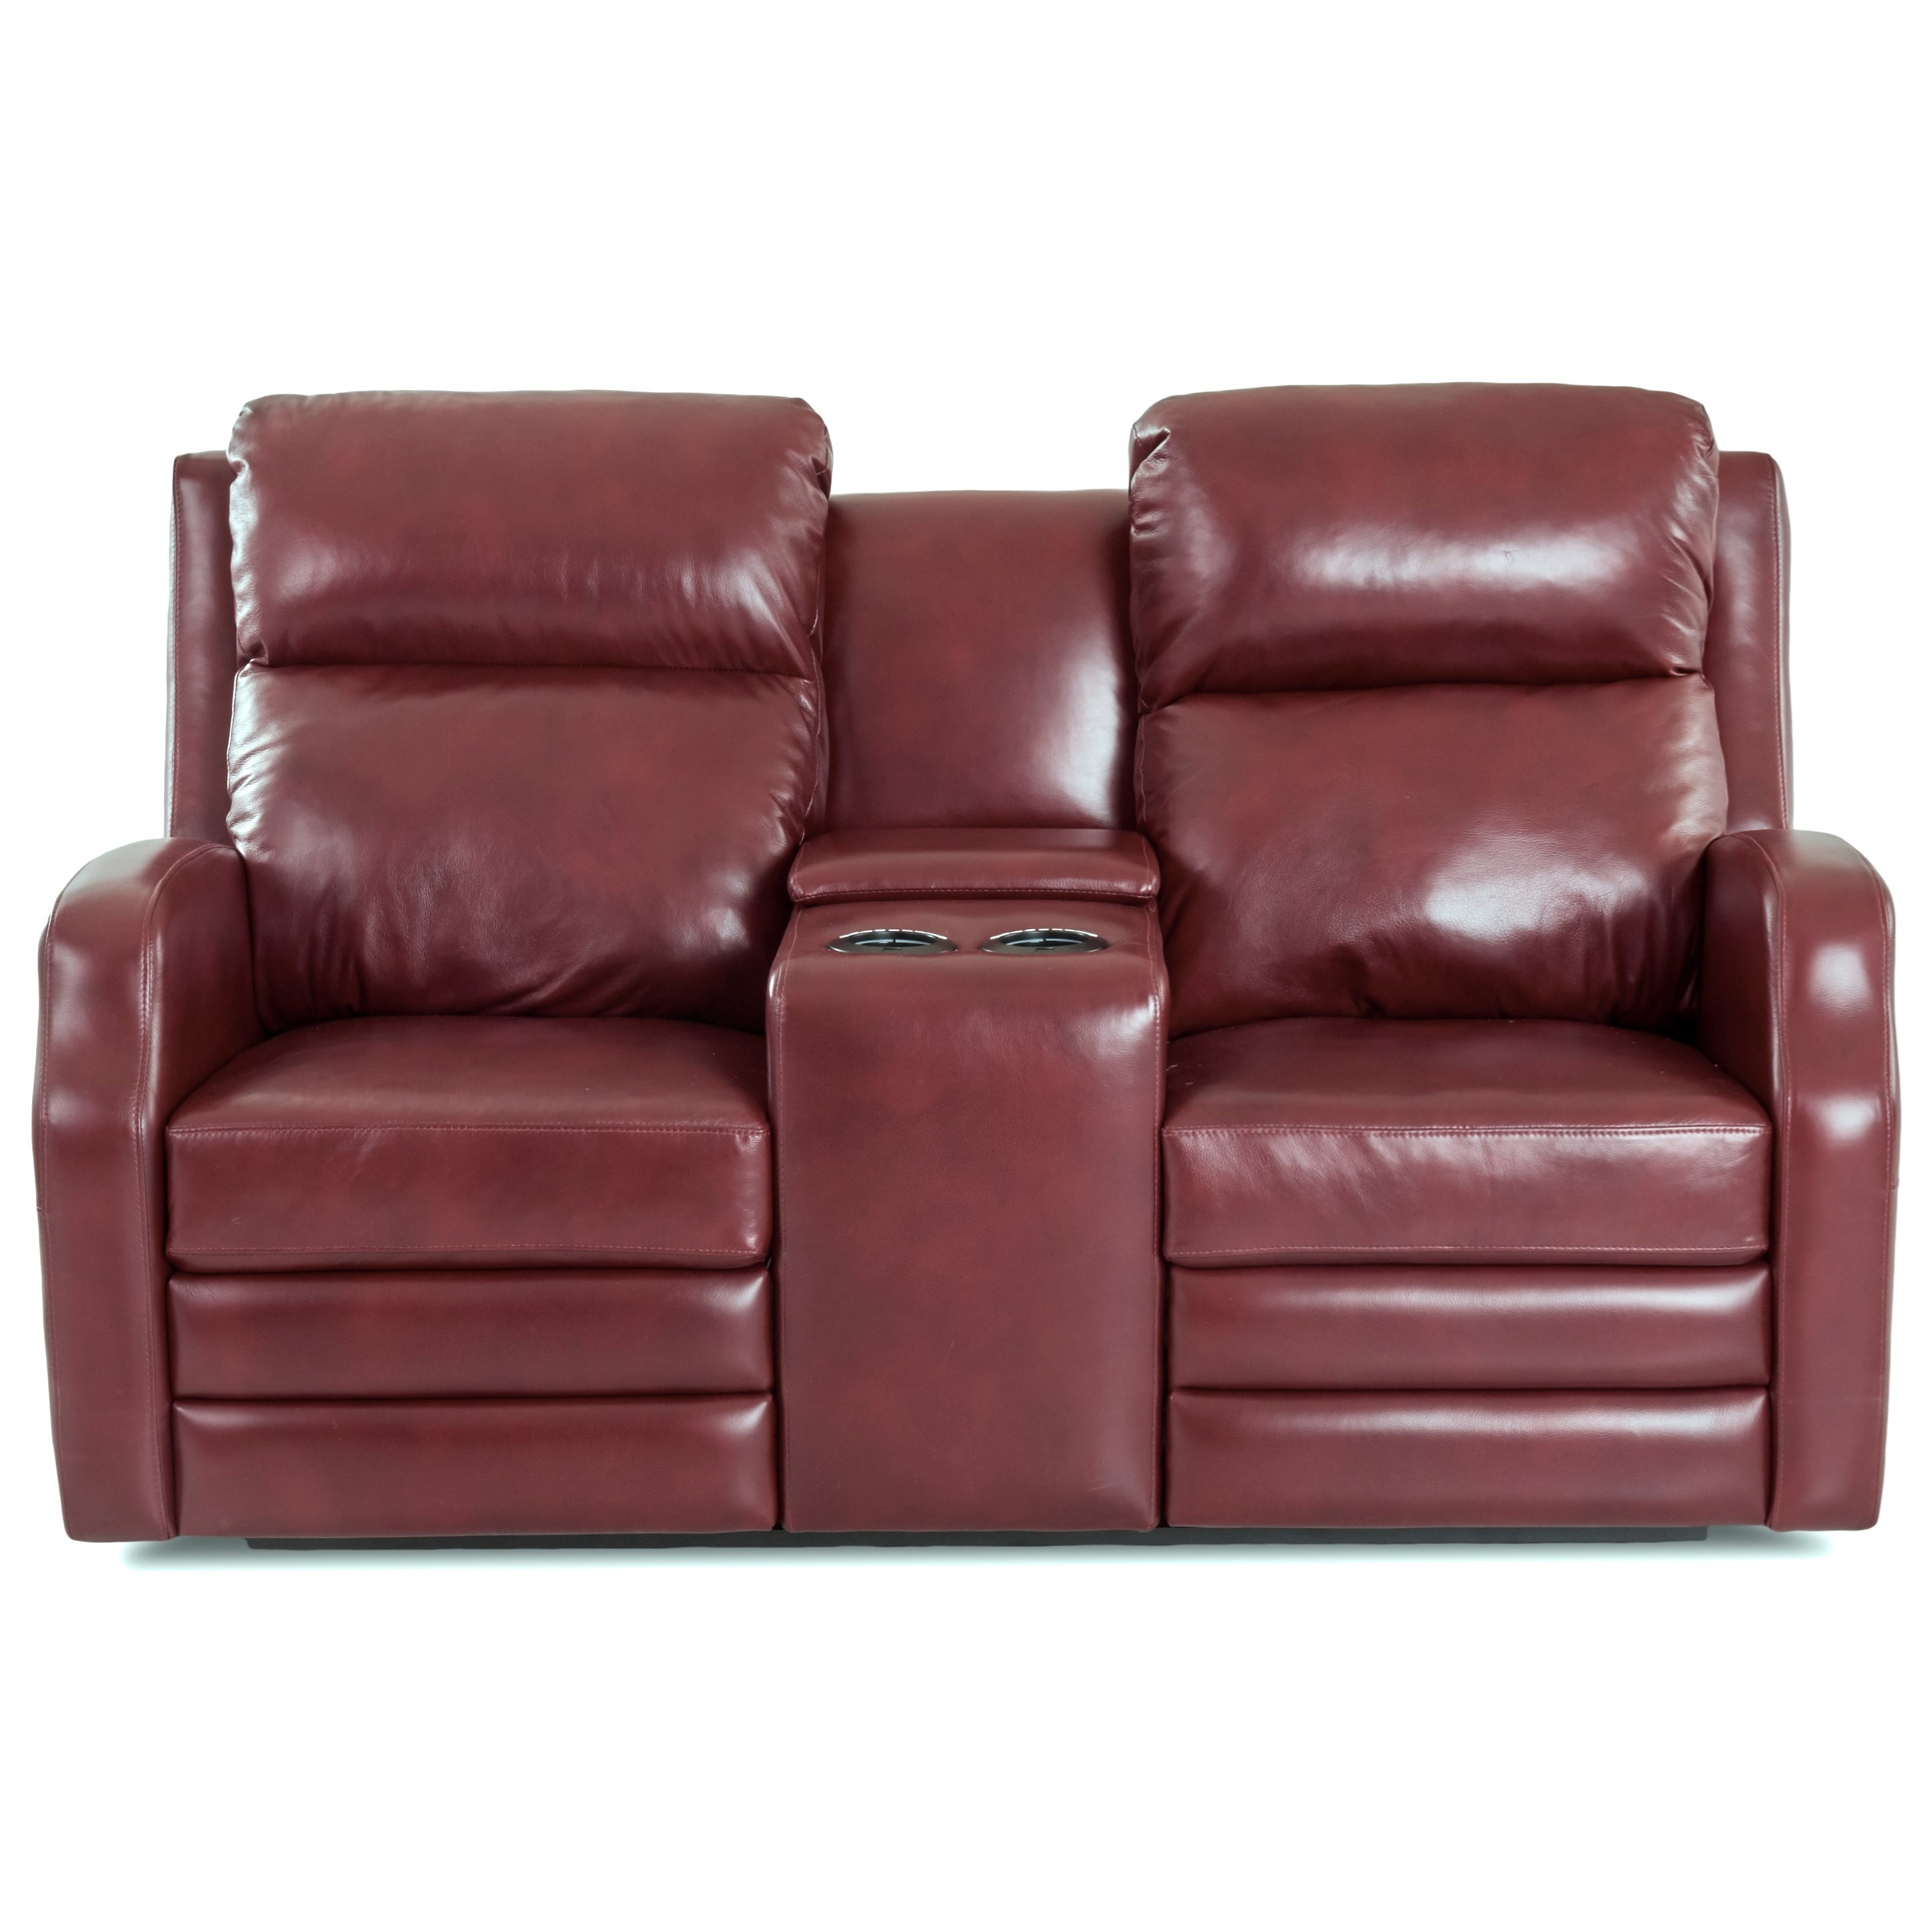 Kamiah Console Reclining Loveseat by Klaussner at Lapeer Furniture & Mattress Center